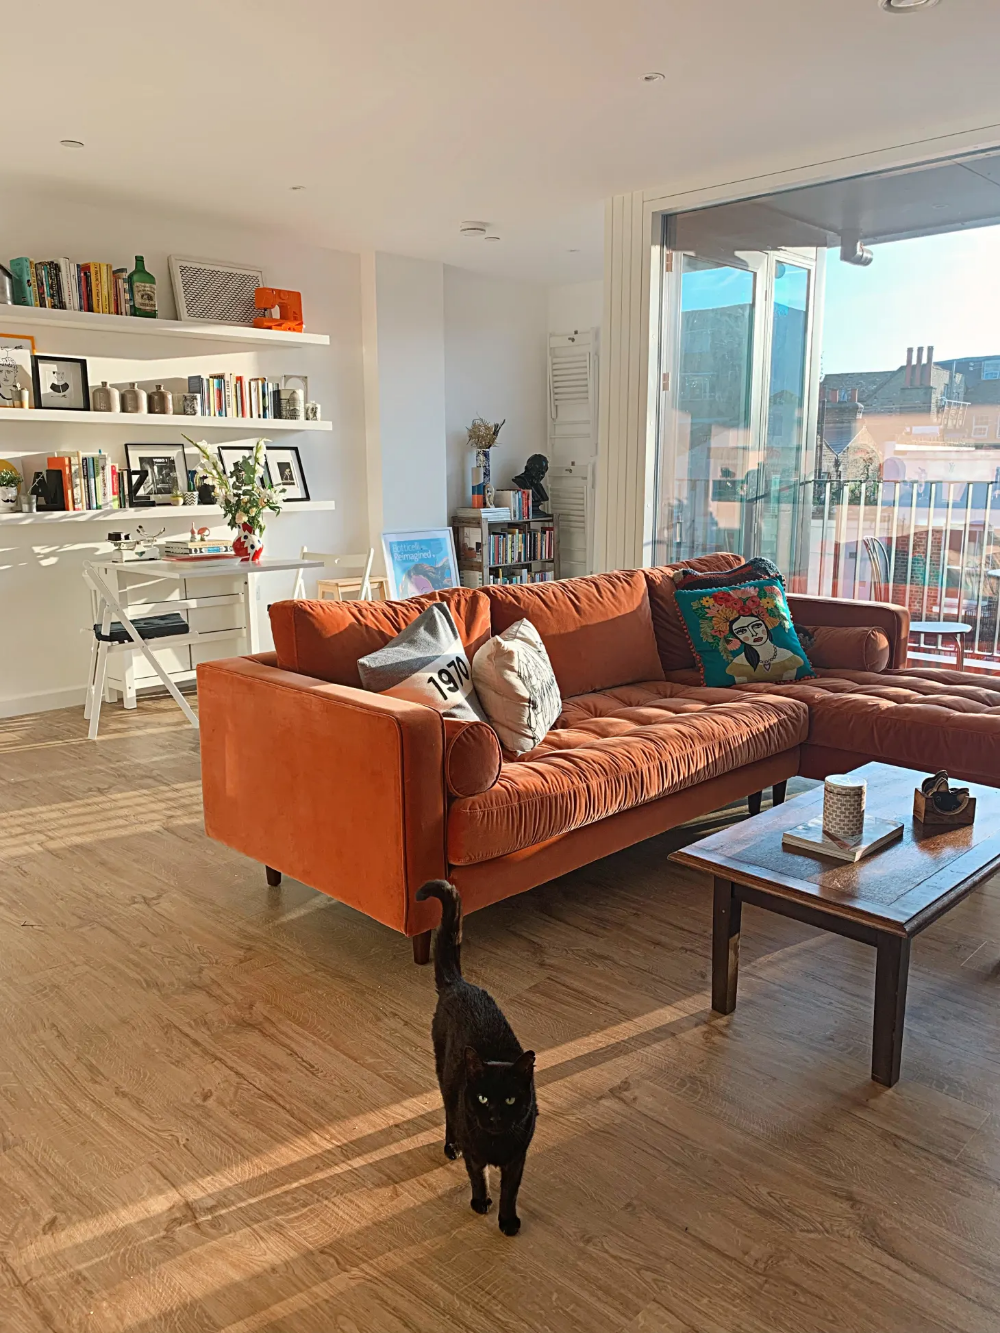 Orange is the New Blue, at Least When it Comes to Living Room Sofas